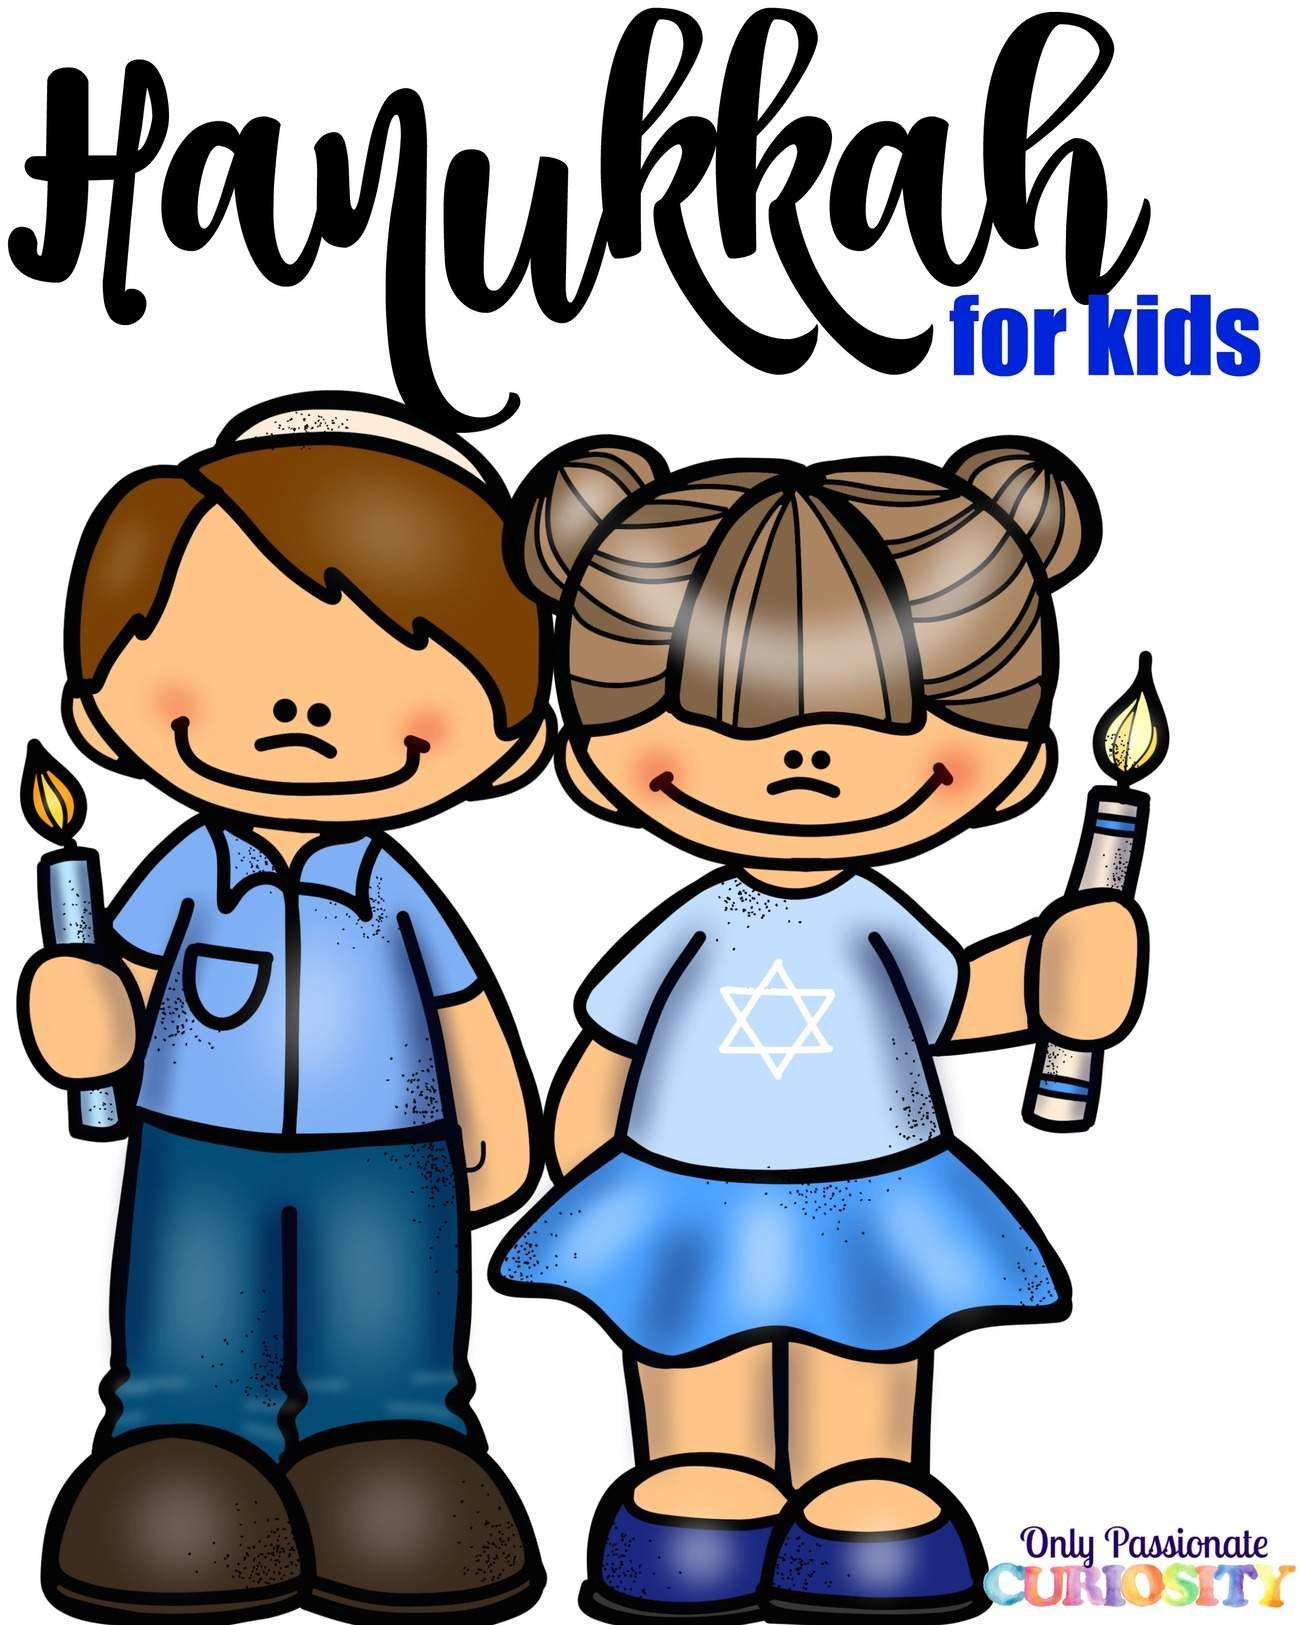 World Holidays Hanukkah For Kids